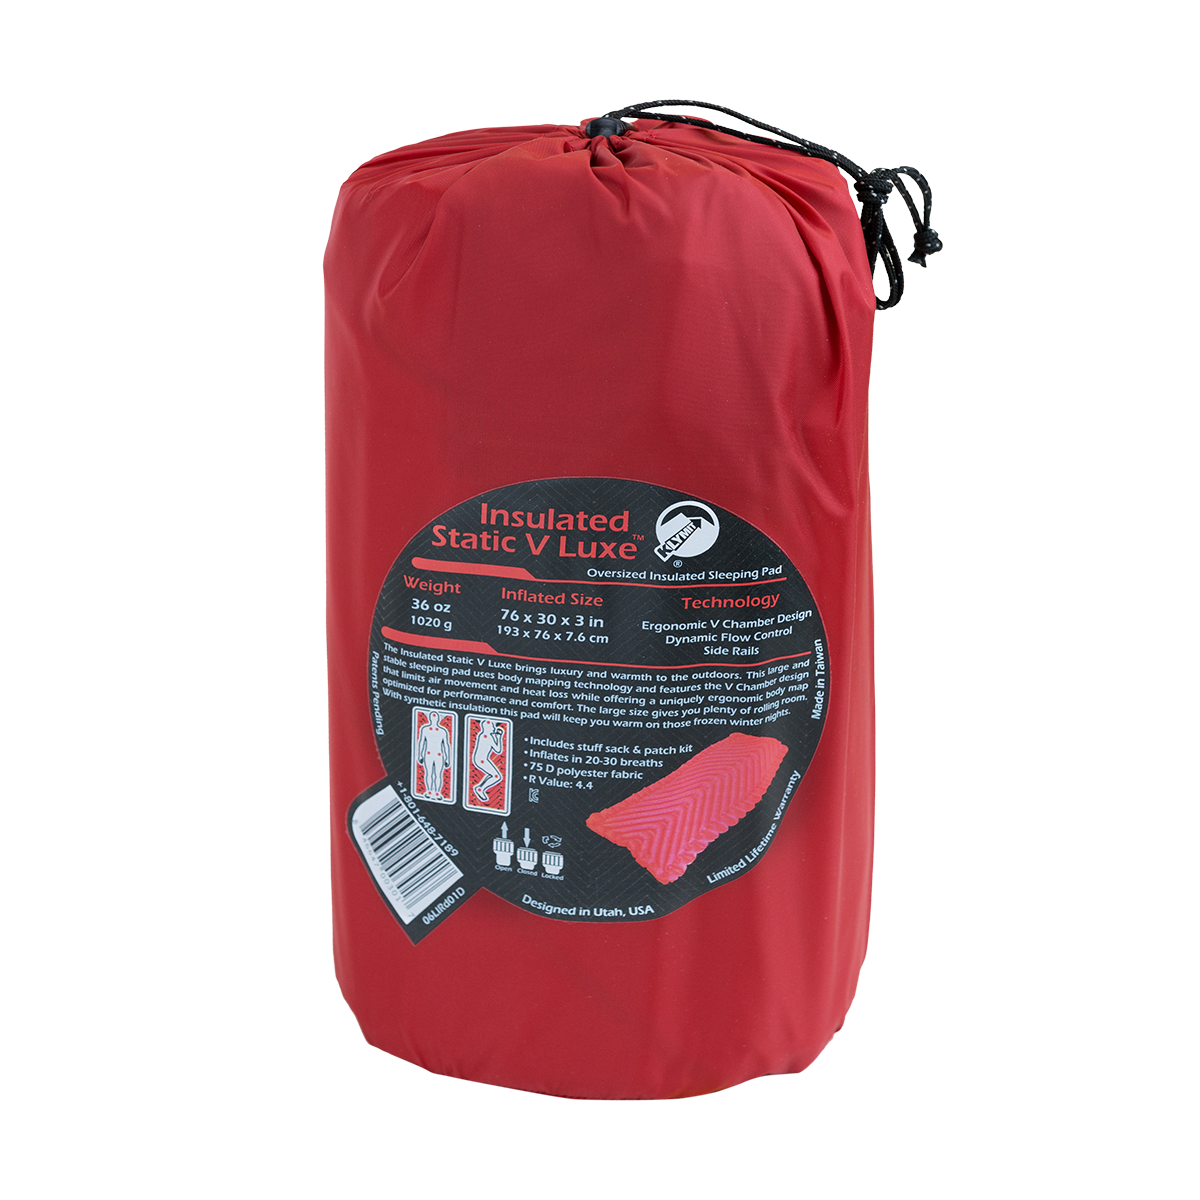 KLYMIT Insulated Static V Luxe Xtra Large Sleeping Pad - FACTORY REFURBISHED 4